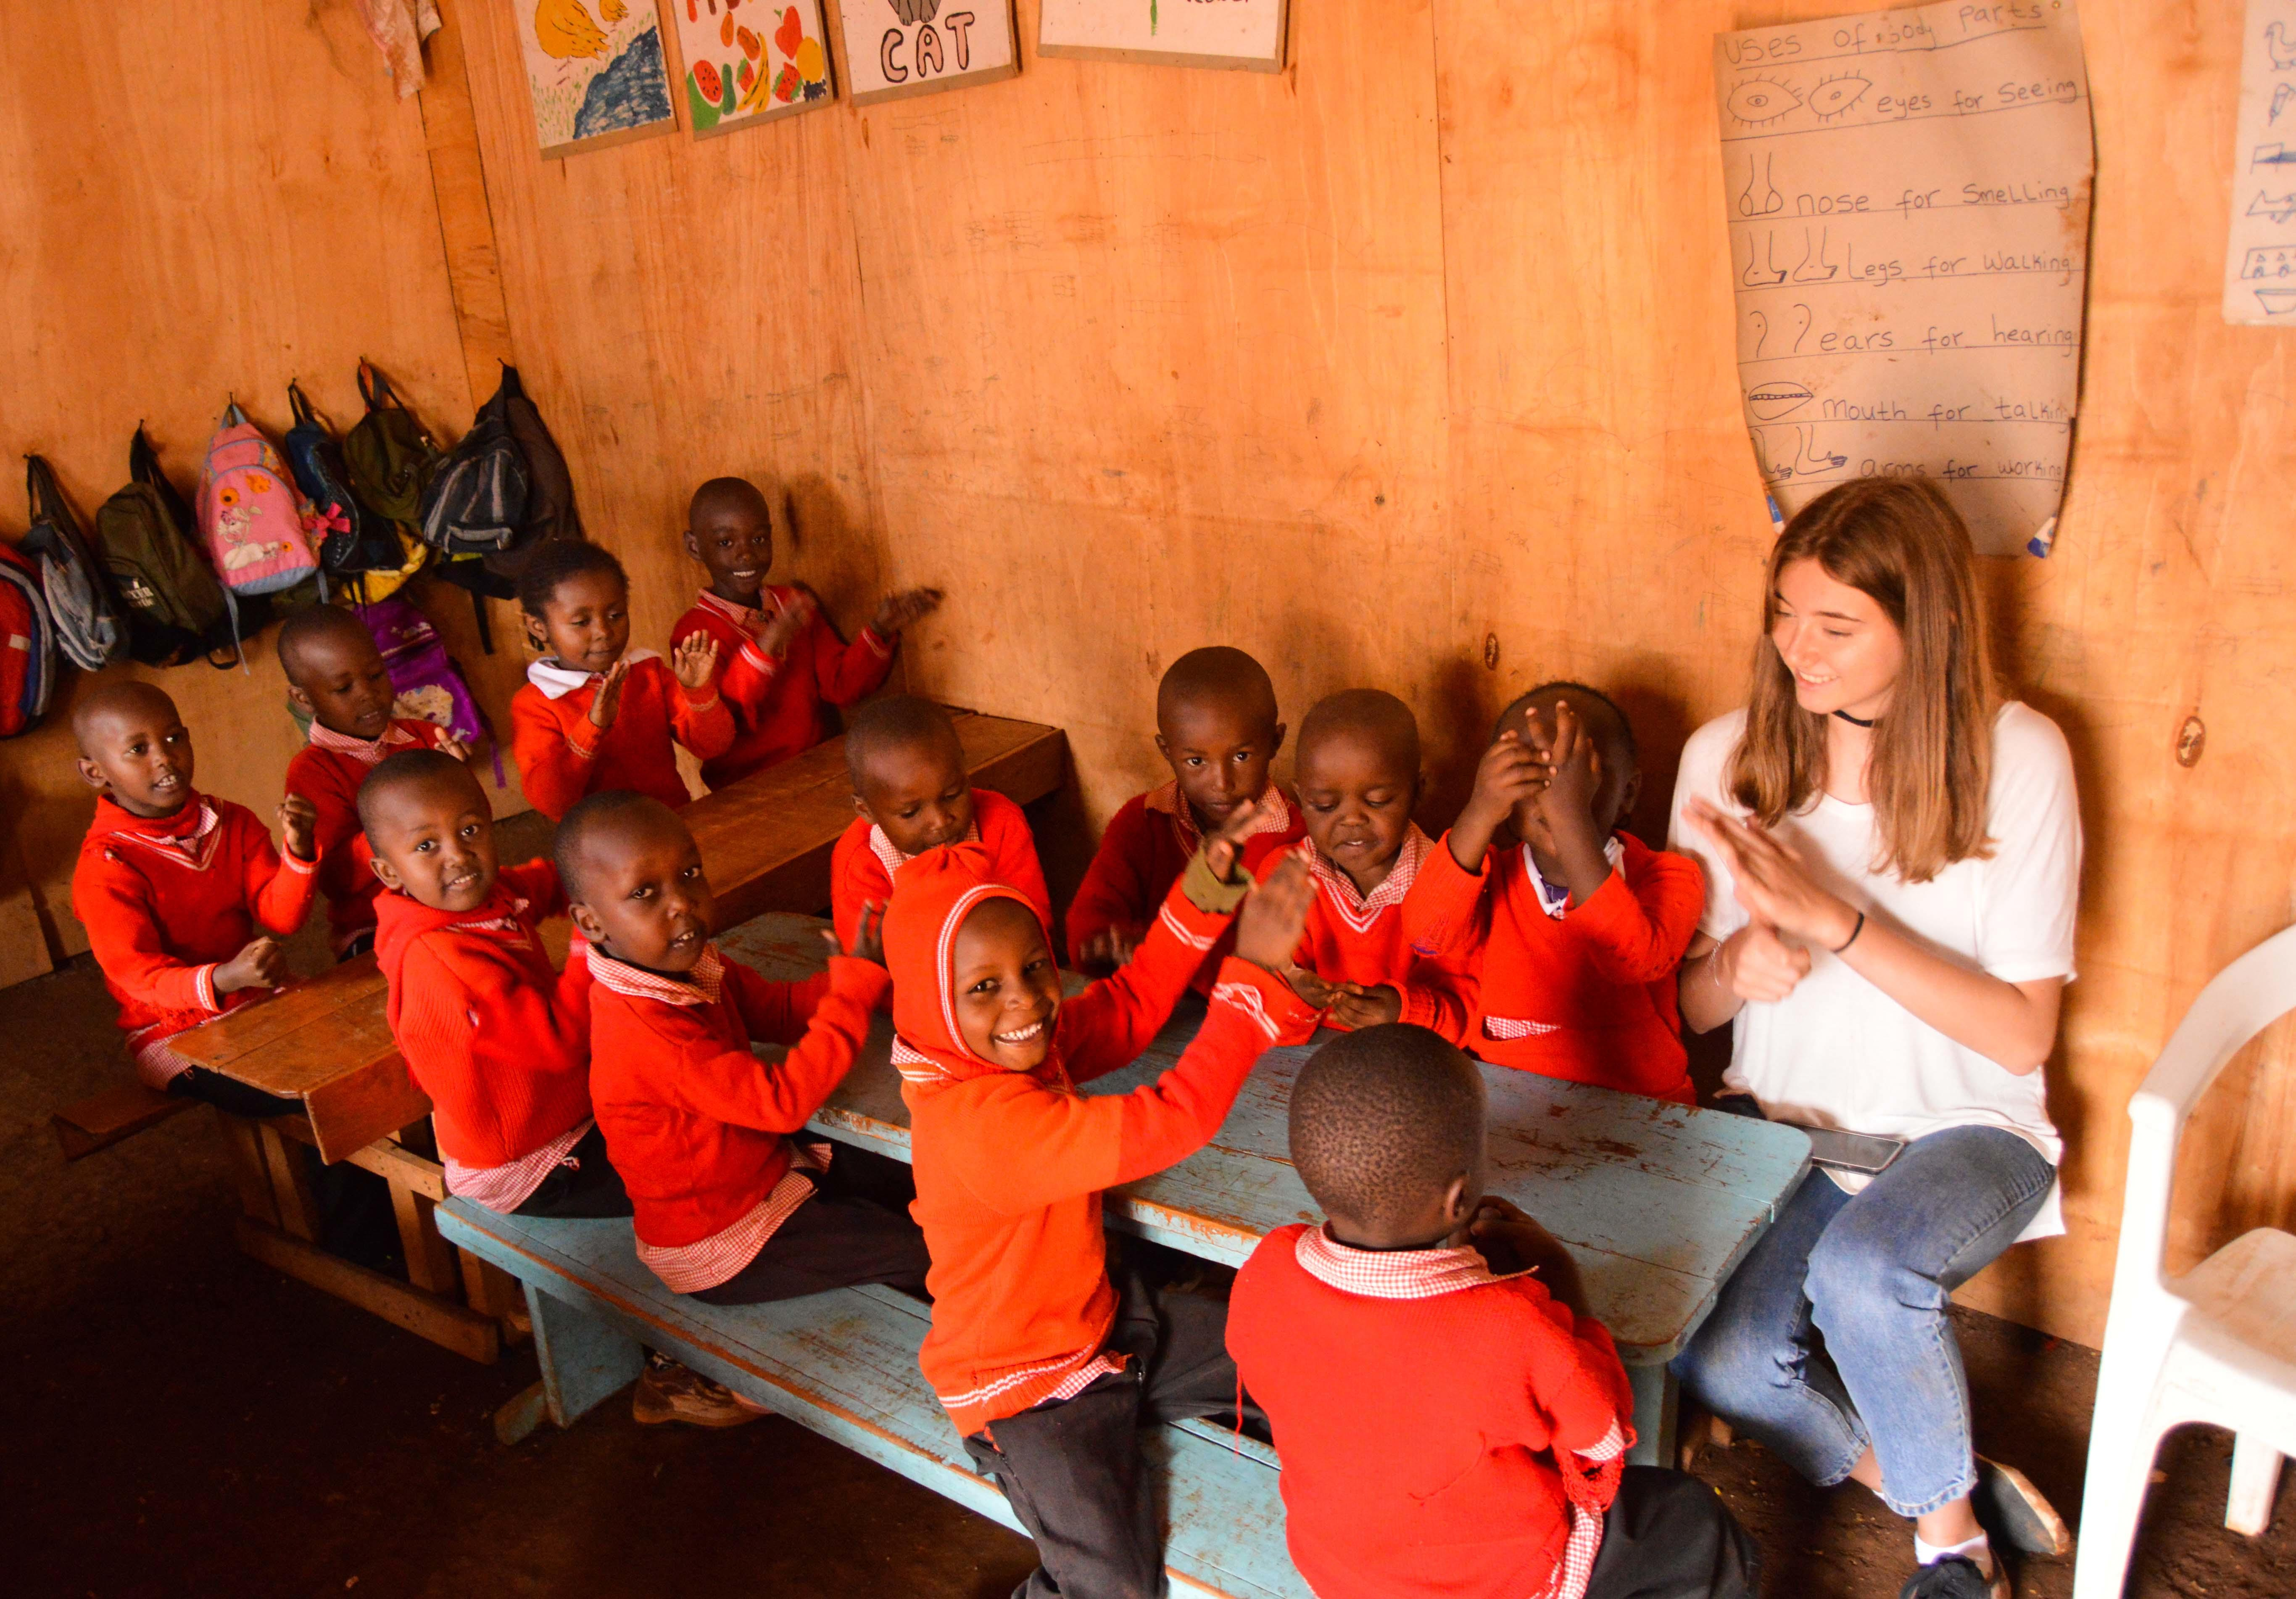 A volunteer assists with volunteer work with children for teenagers in Kenya while singing songs and having fun with her students.